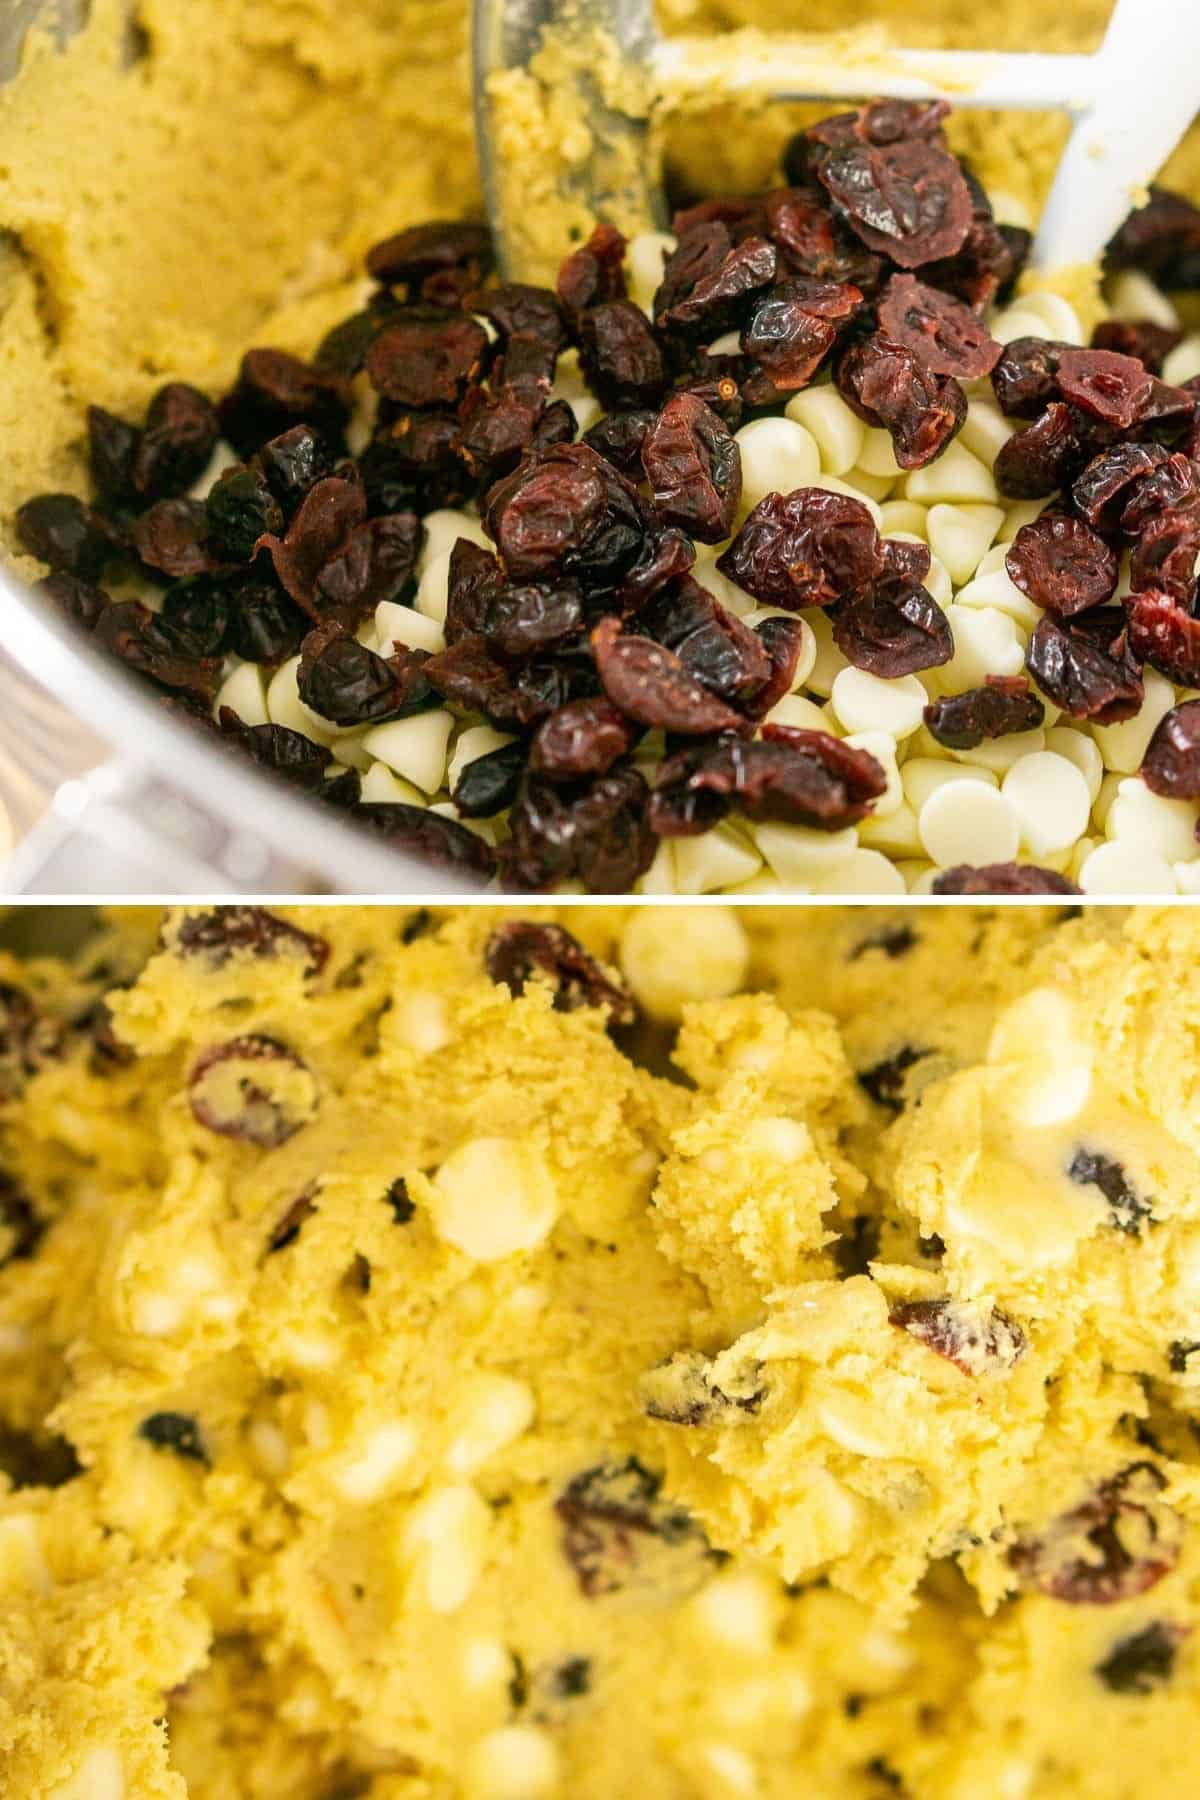 A collage showing the process of mixing in the cranberries and white chocolate chips into the cookie dough.